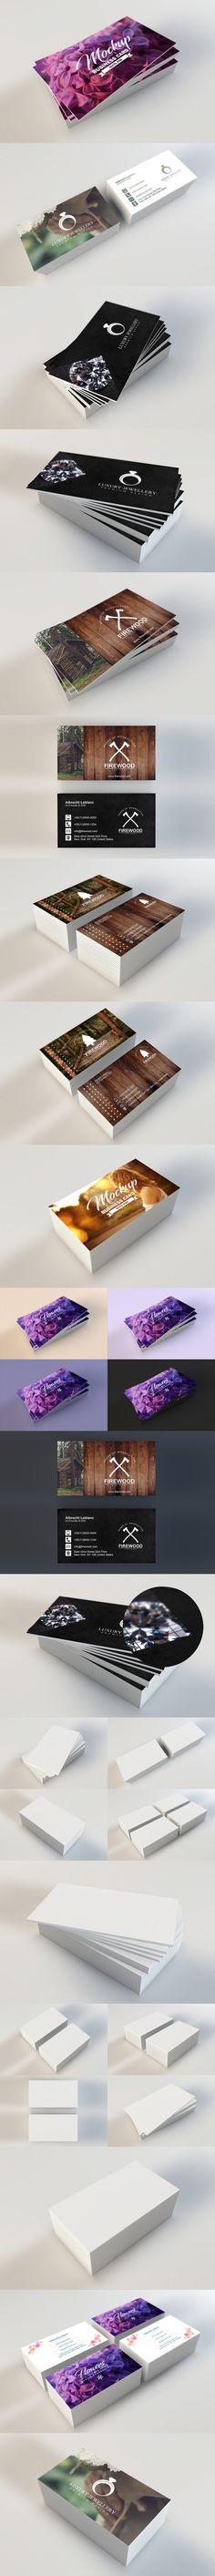 Bussiness Card Mockup Vol 1